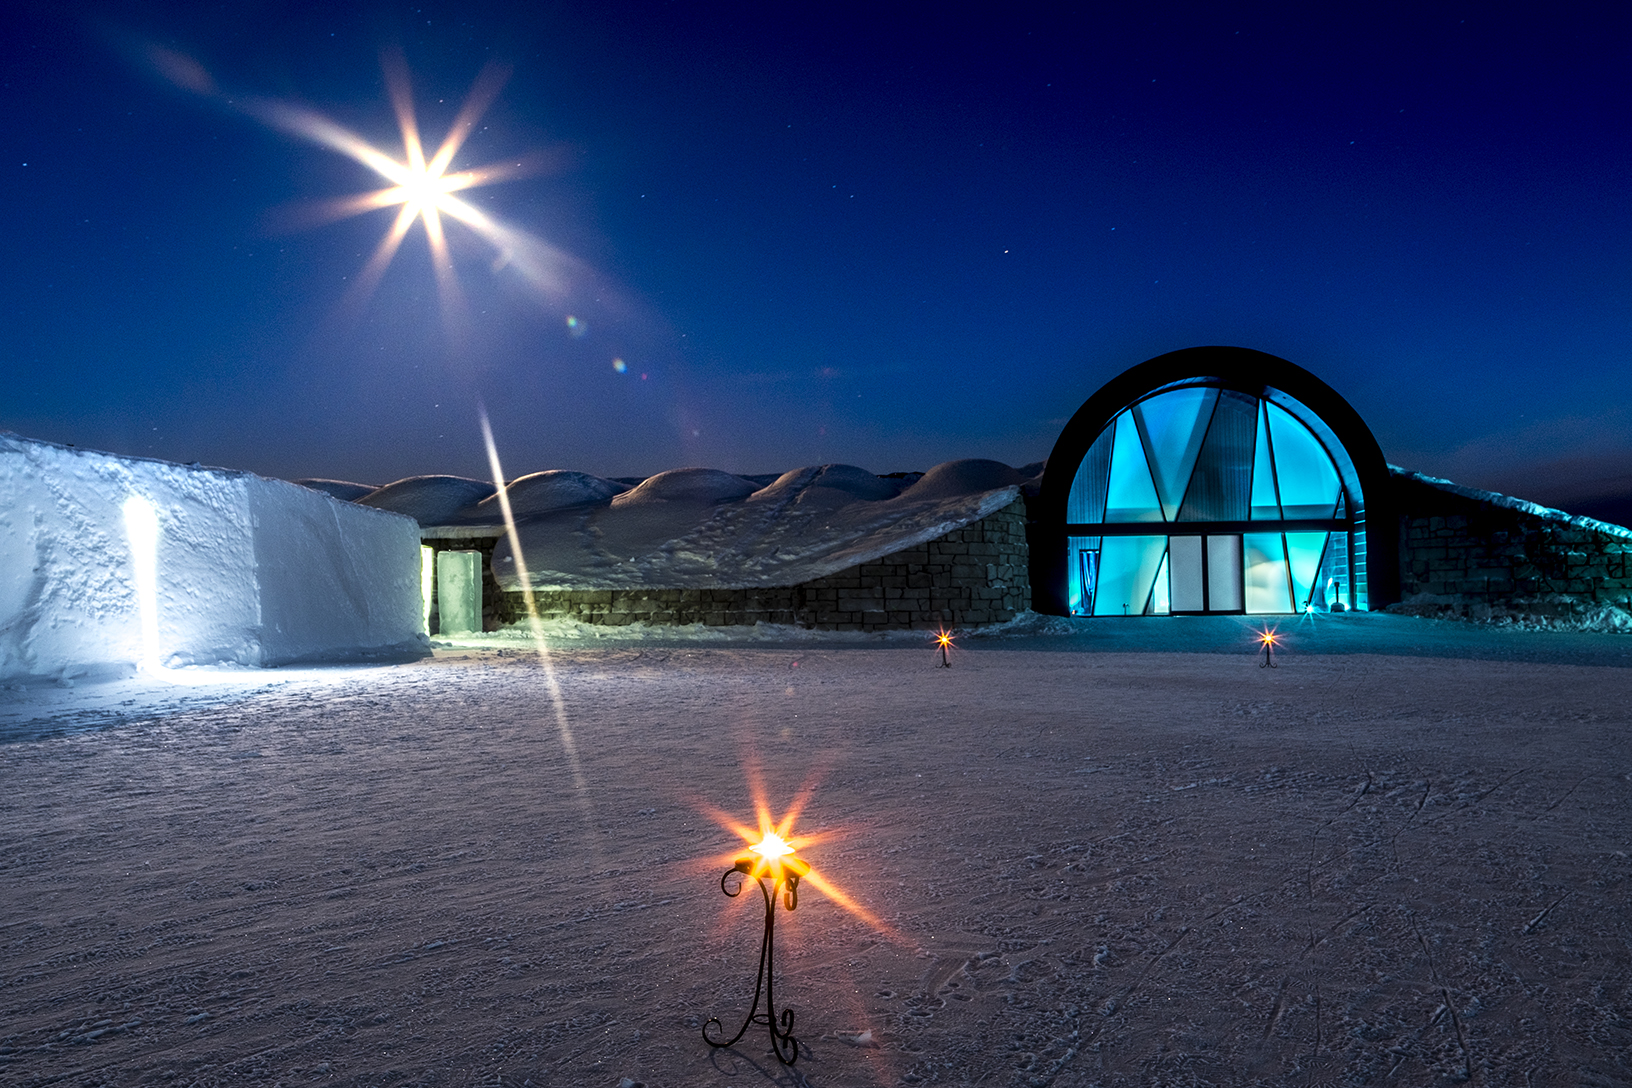 Icehotel in sweden is a world famous ice hotel which is there for the whole year and i used long exposure to make the lights to turn into star and give a feel like star on sky as well as earth